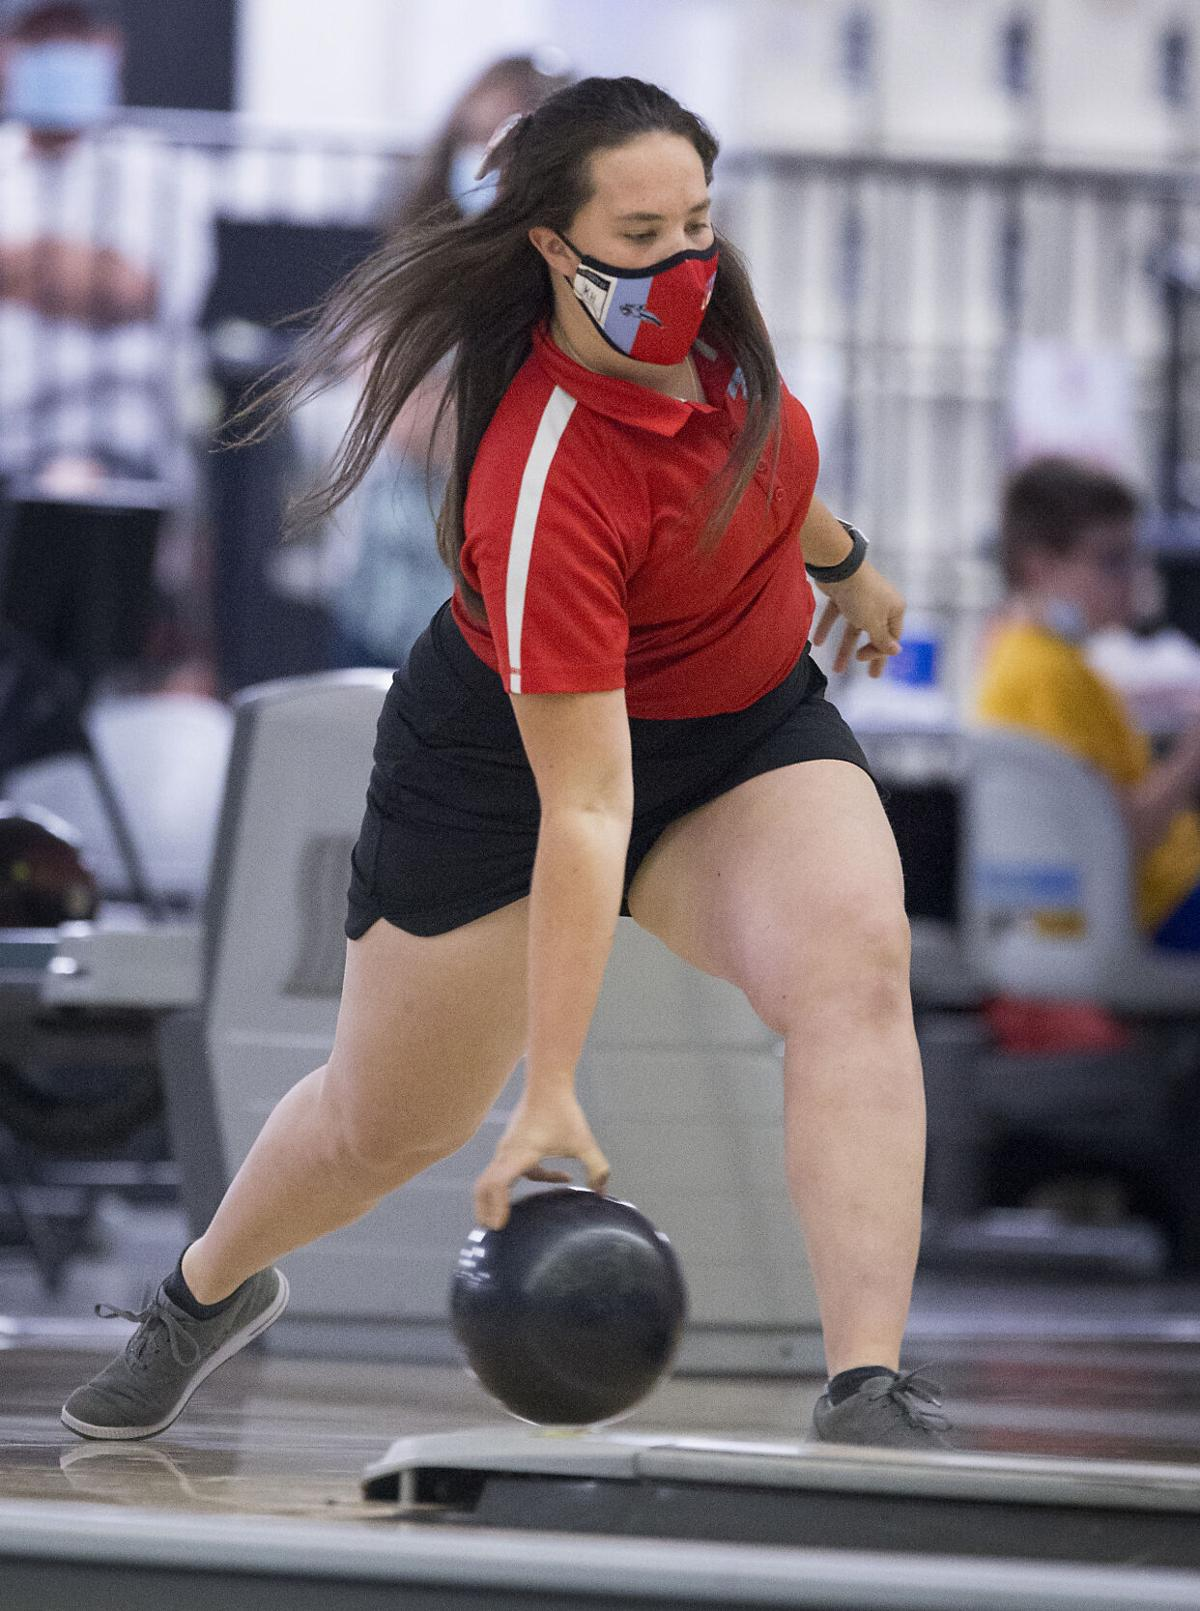 210527-sportslocal-whsehsbowling 02.jpg